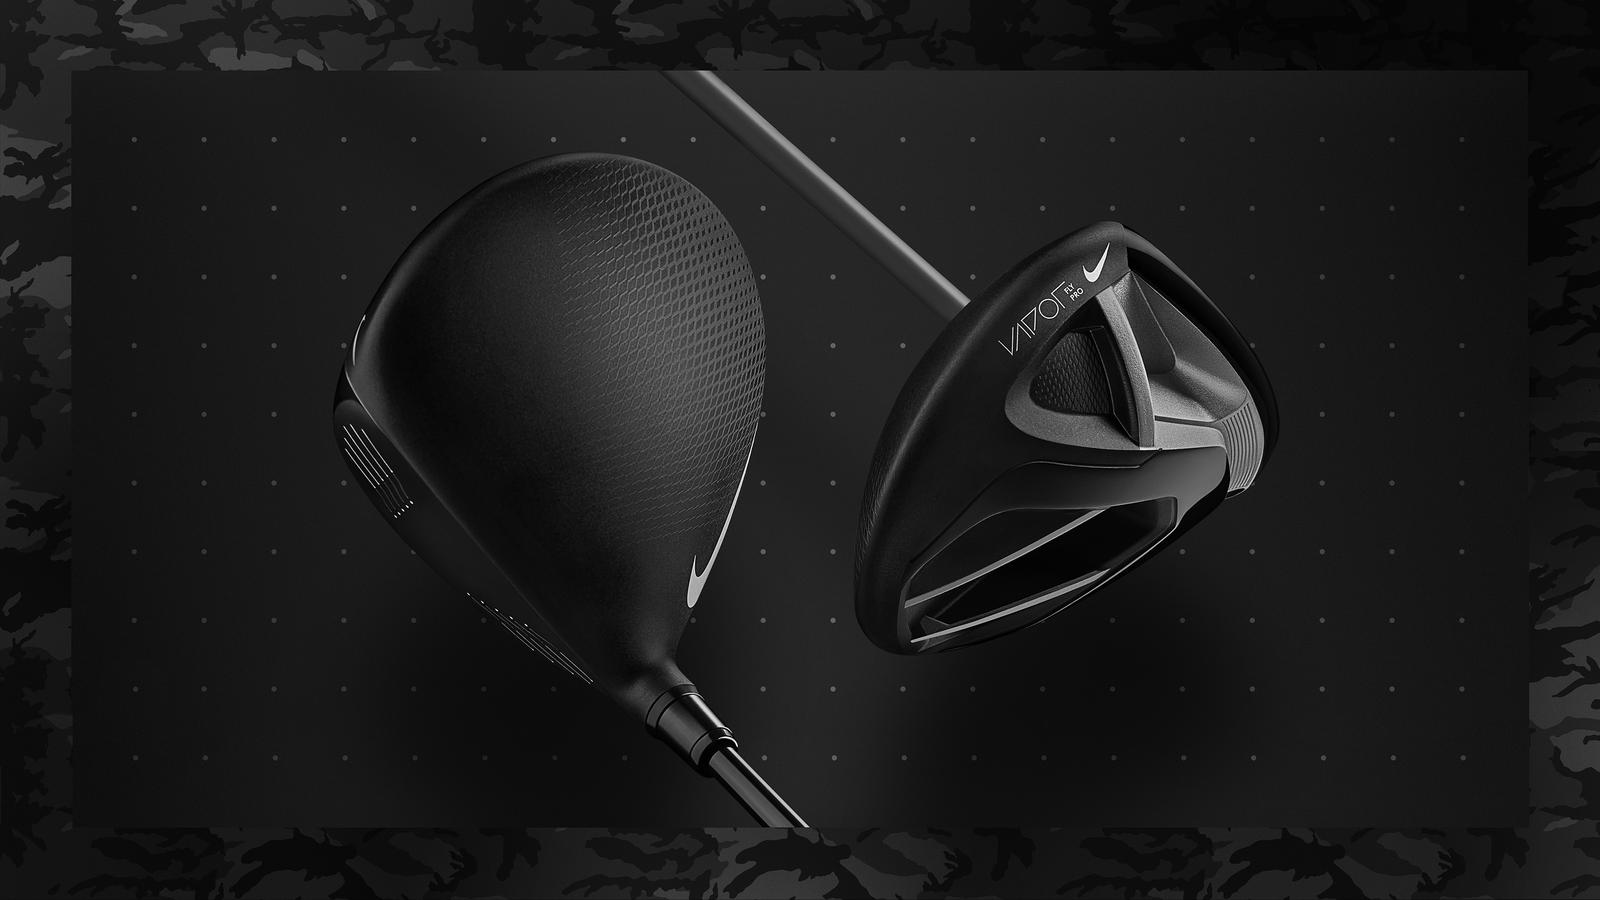 Limited edition Vapor Fly and Vapor Fly Pro drivers in matte black.